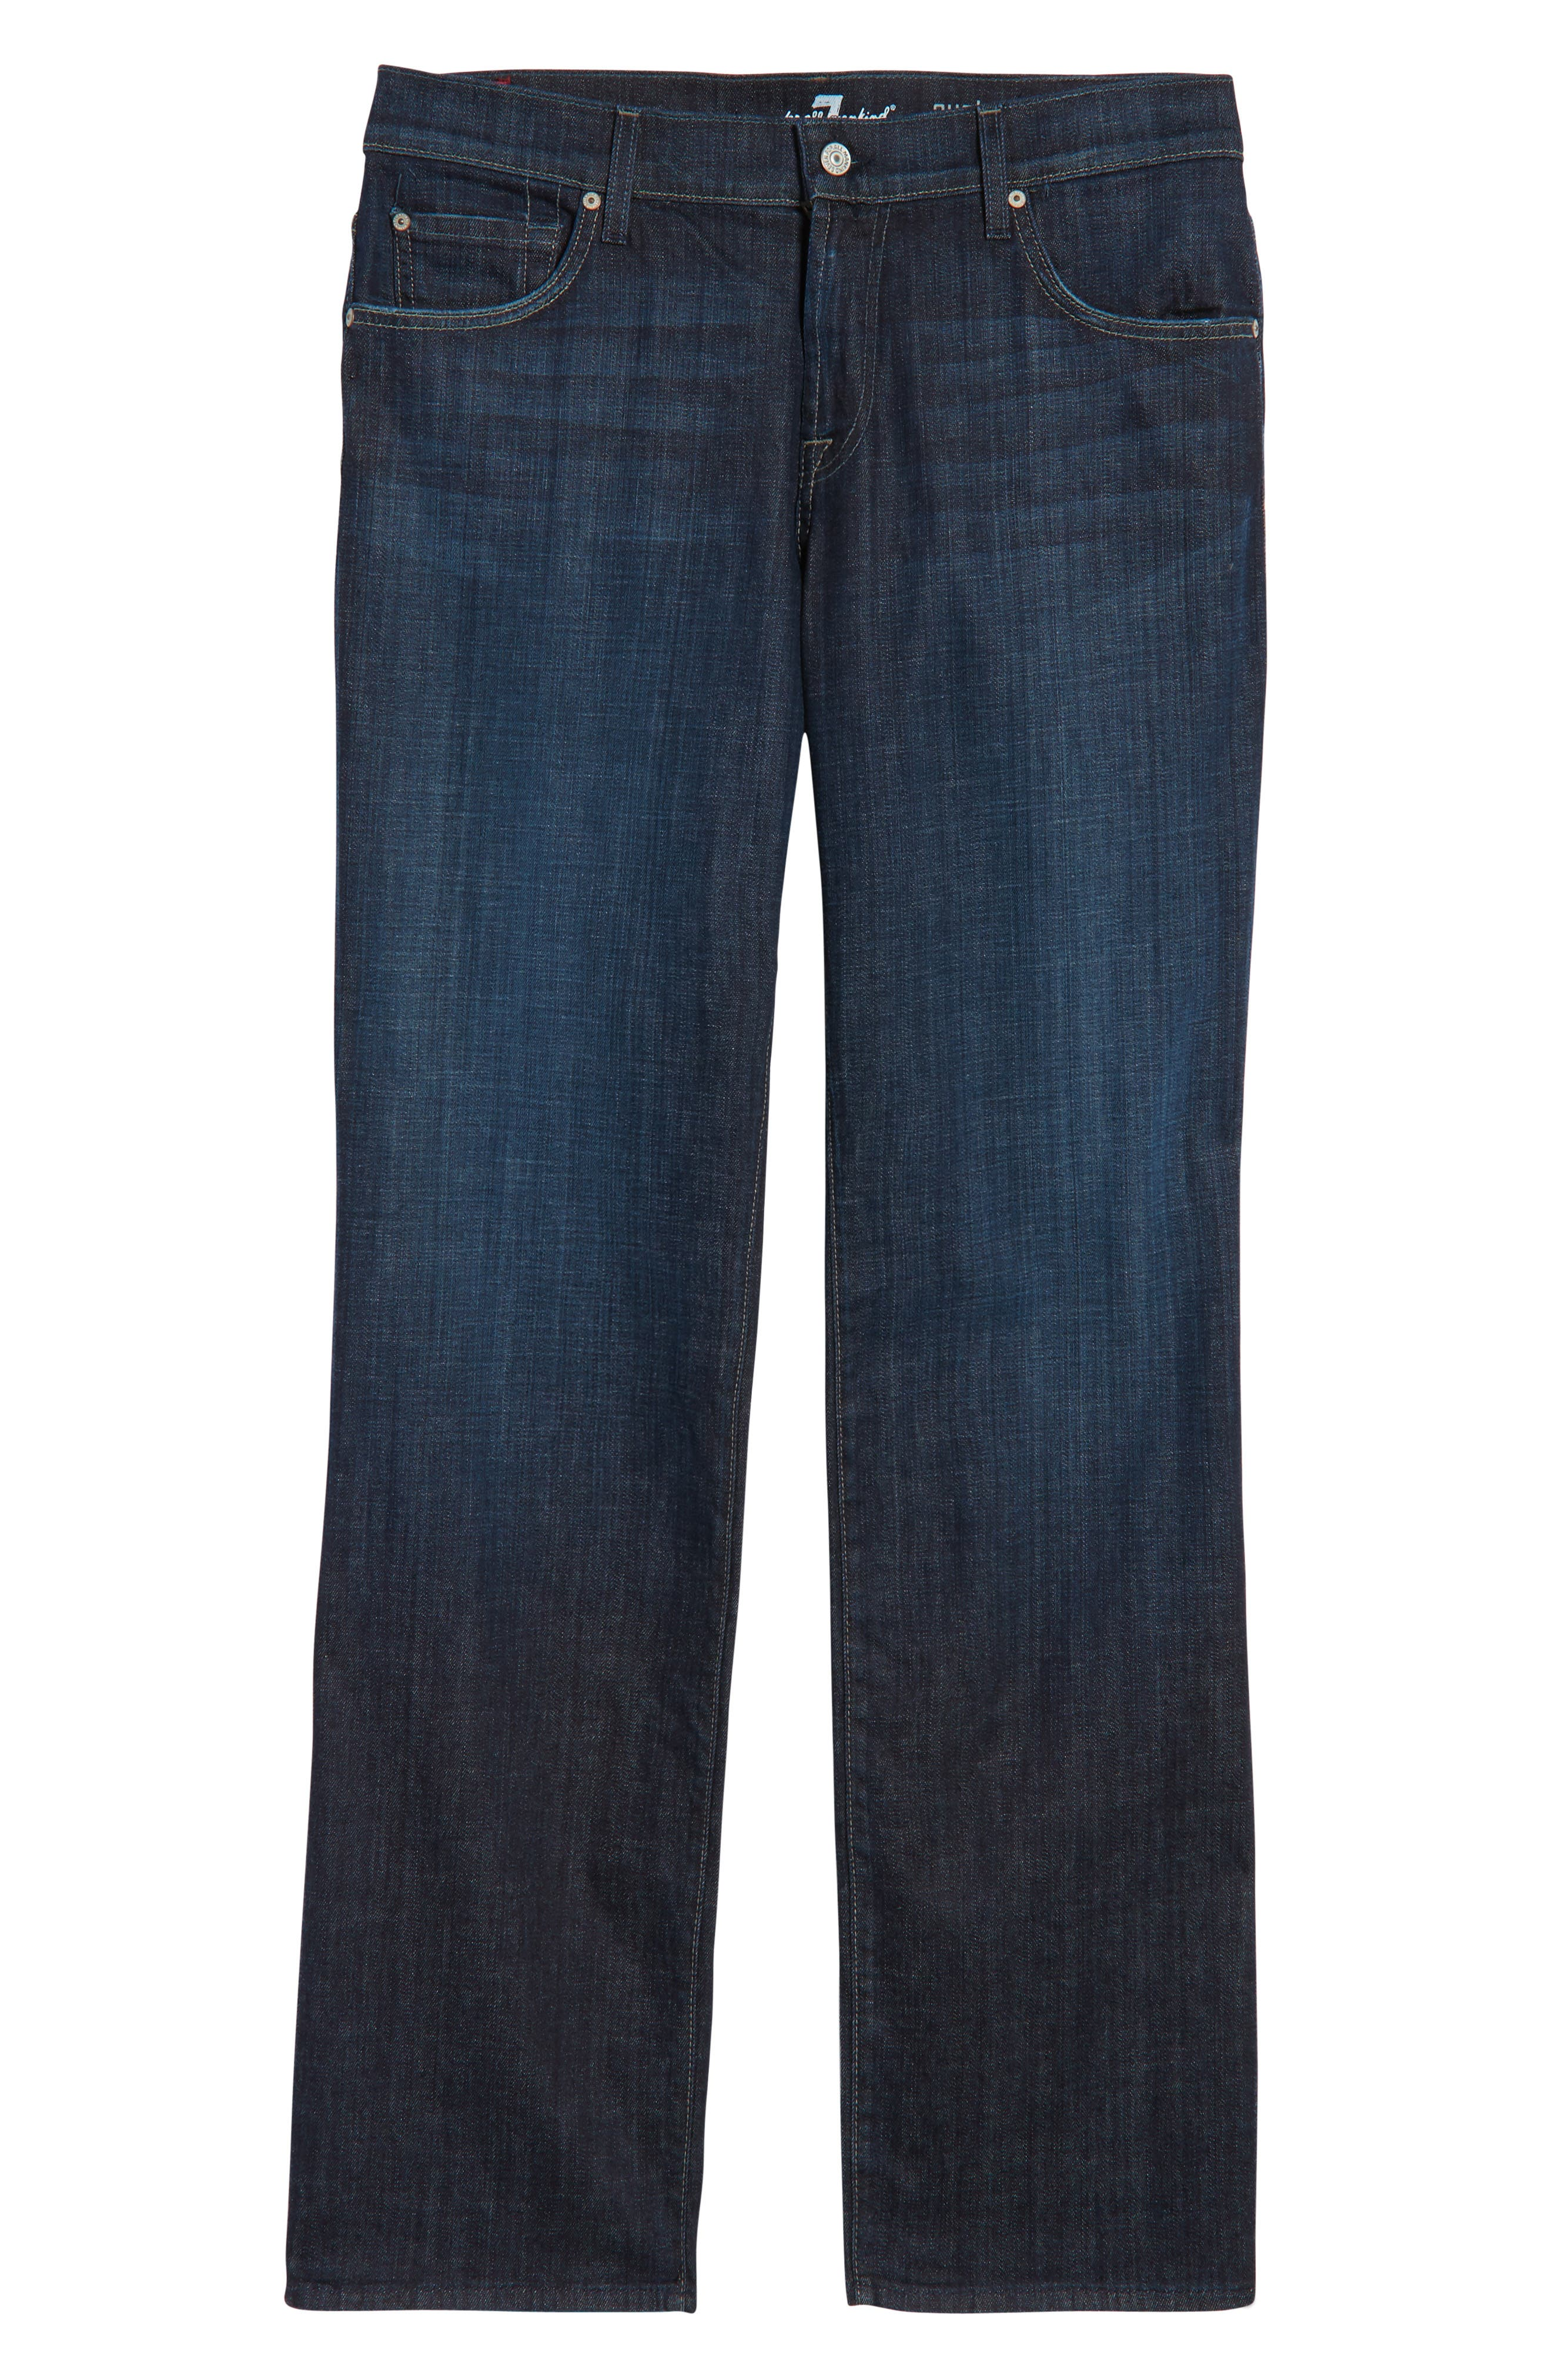 7 FOR ALL MANKIND<SUP>®</SUP> Austyn Relaxed Straight Leg Jeans, Main, color, LOS ANGELES DARK